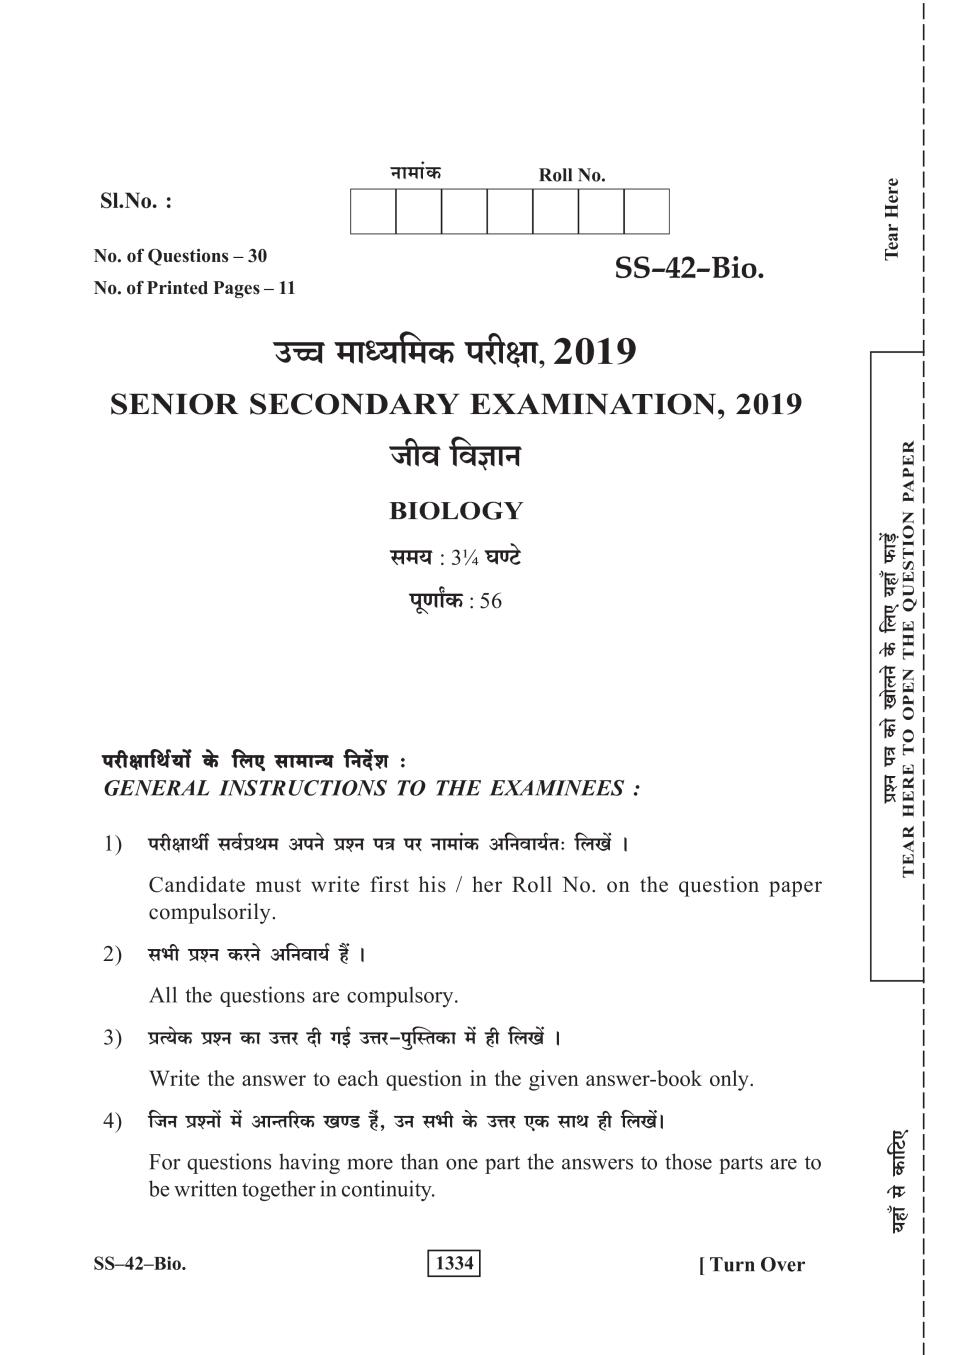 Rajasthan Board Sr Secondary Biology Question Paper